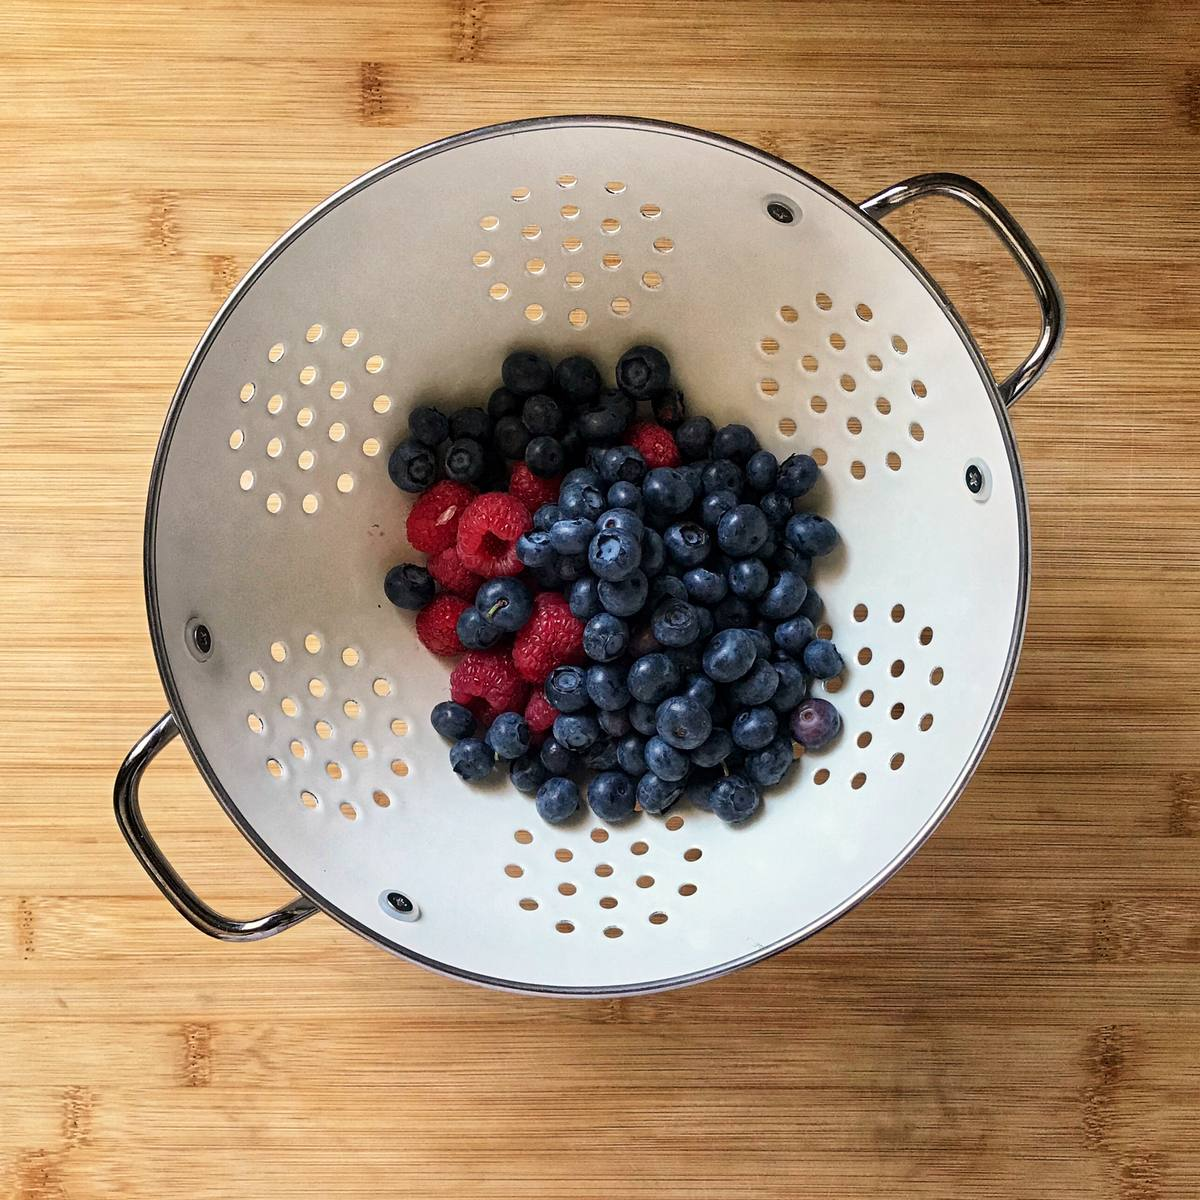 Fresh blueberries ans raspberries in a white colander.